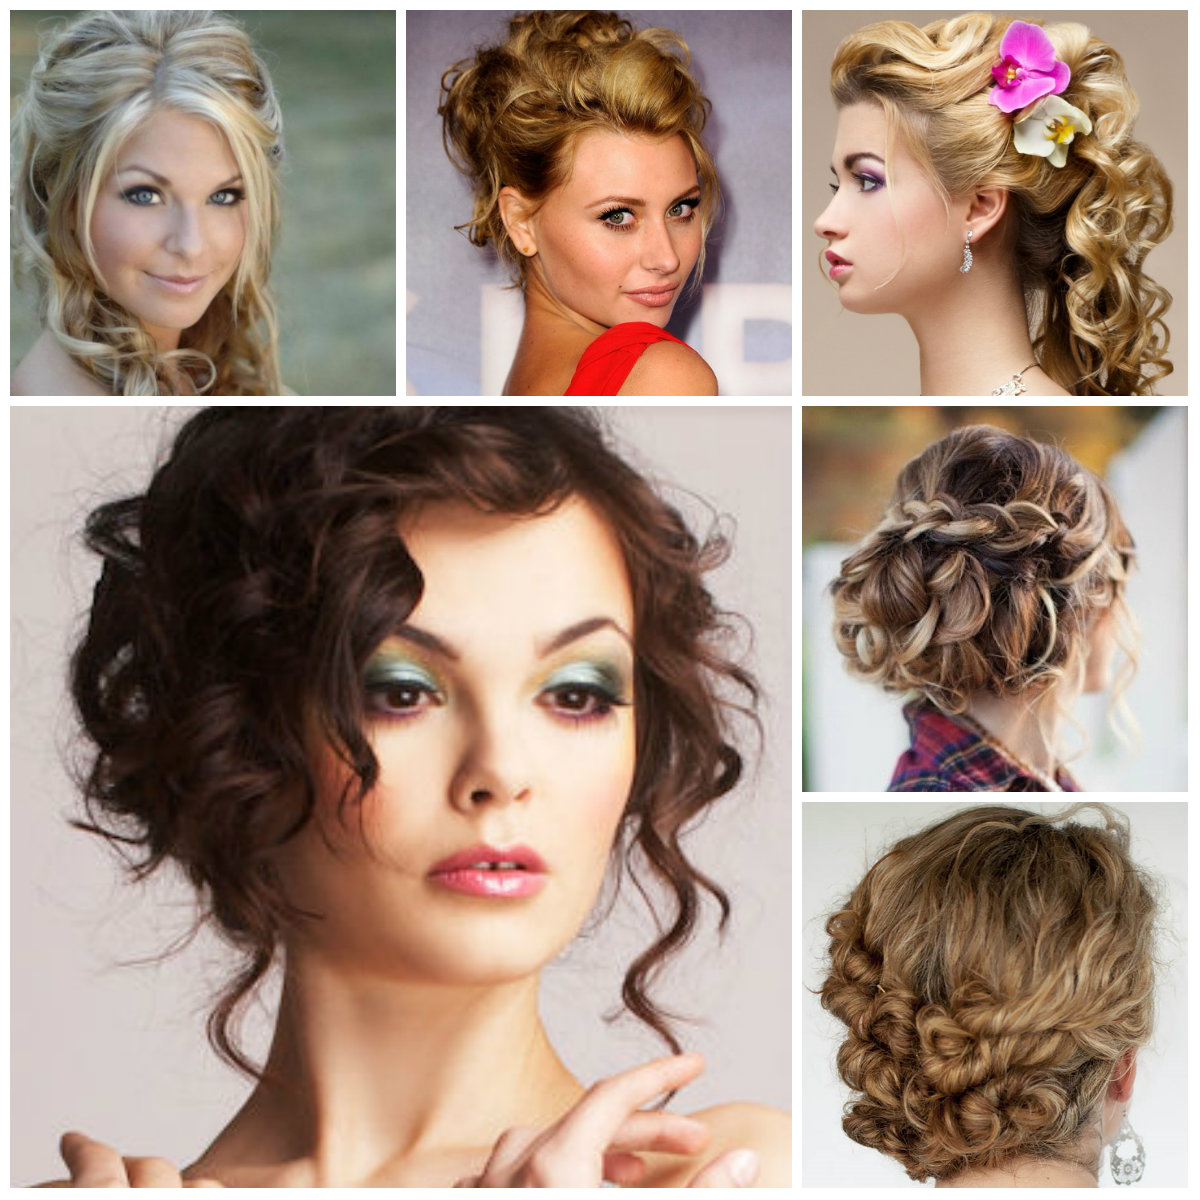 Pleasing Pretty Curly Updo Hairstyles For 2016 2017 Haircuts Hairstyles Short Hairstyles Gunalazisus